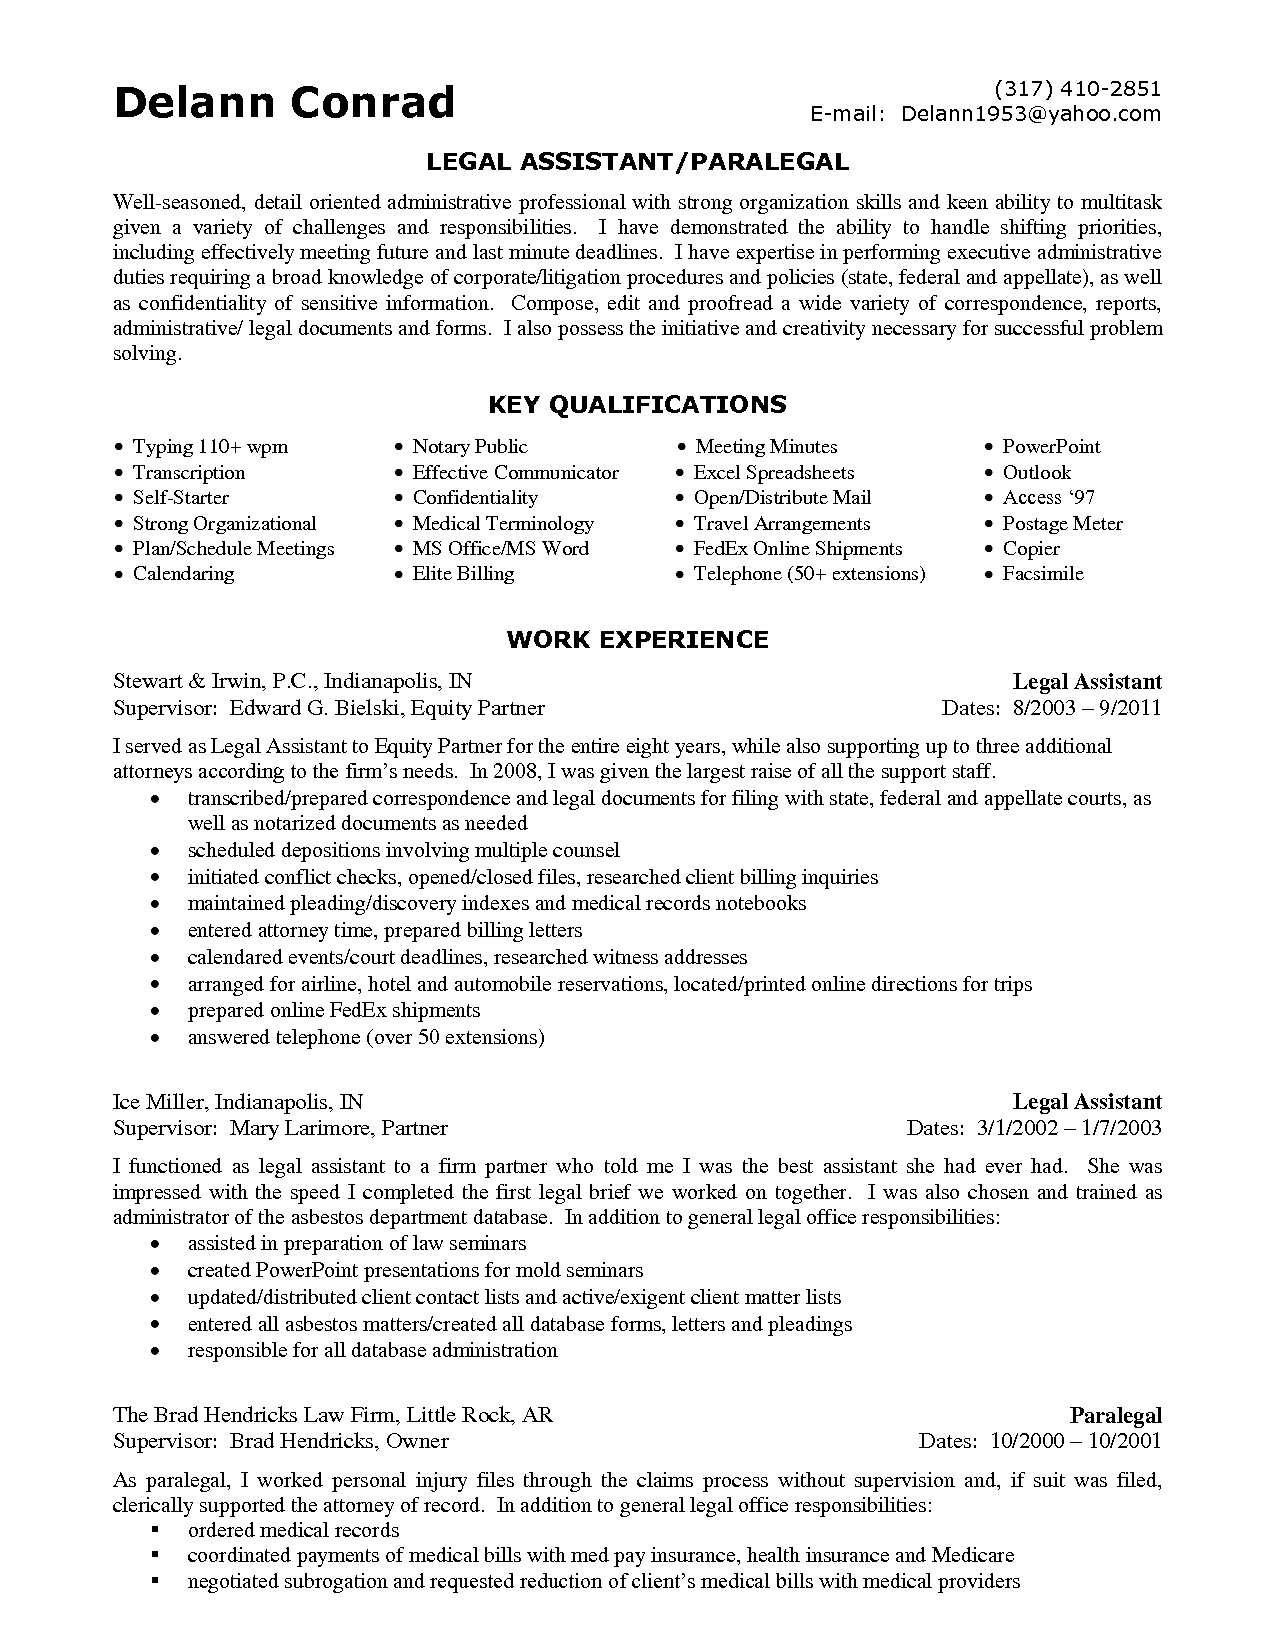 Personal Injury Legal Assistant Resume Sample Samplebusinessresume